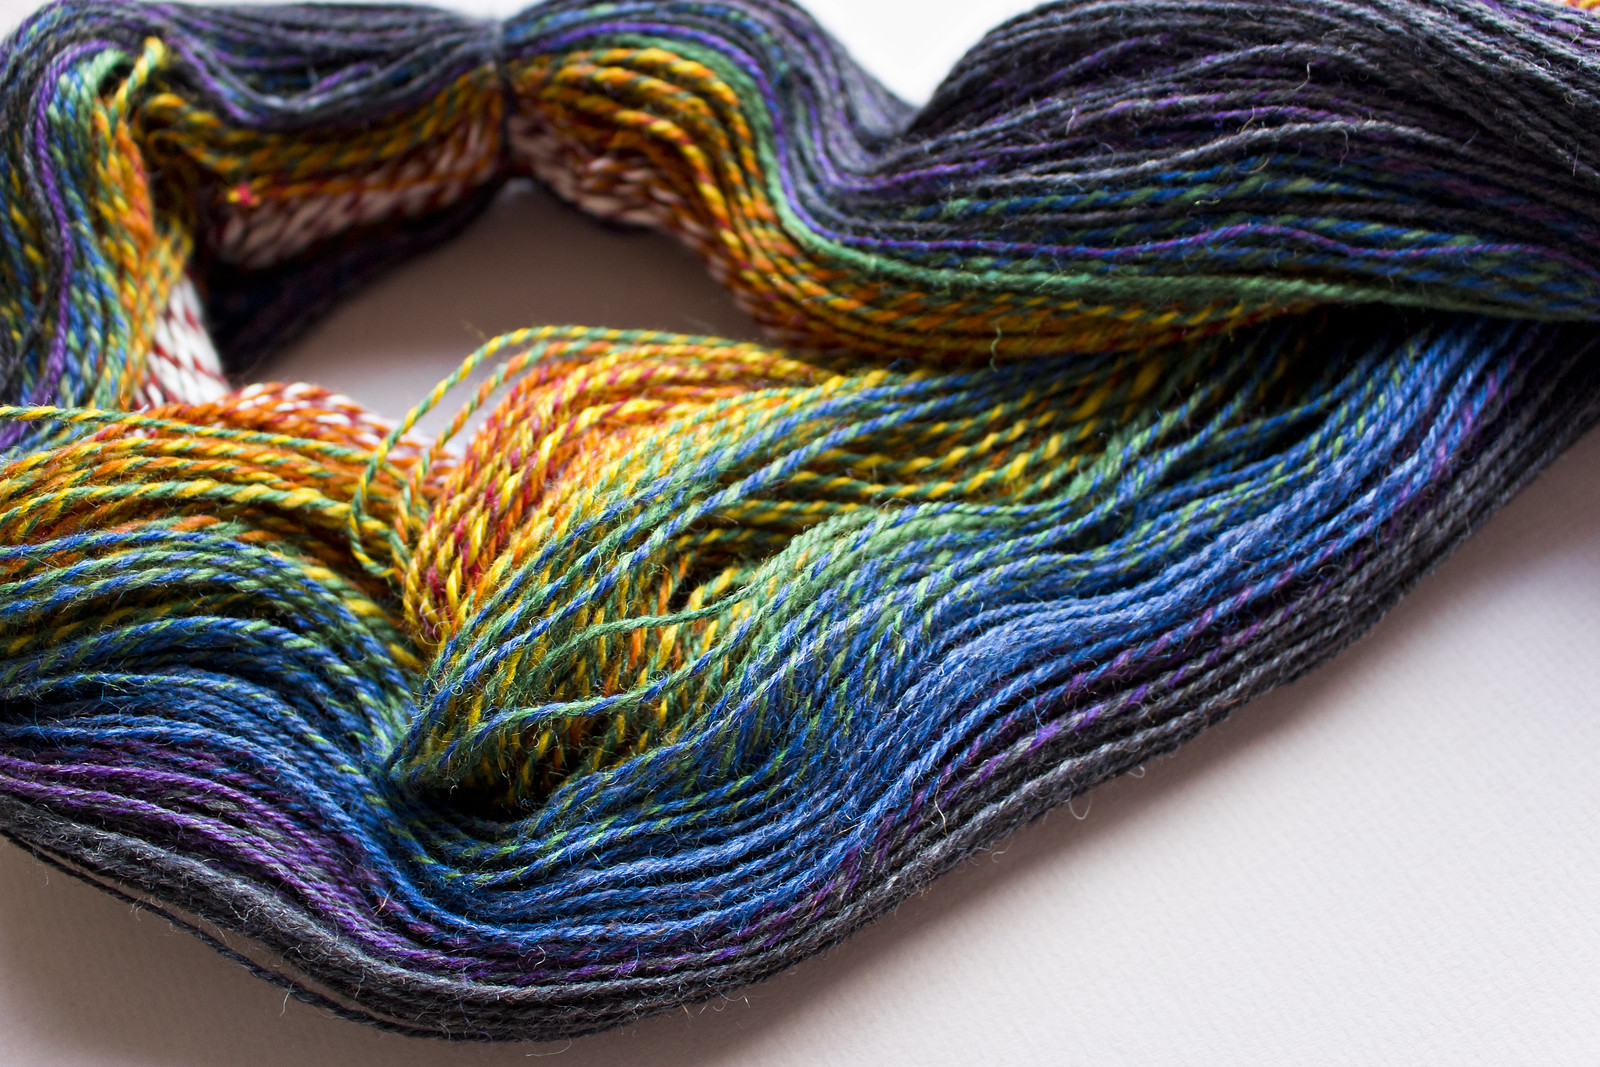 Handspun yarn in rainbow hues